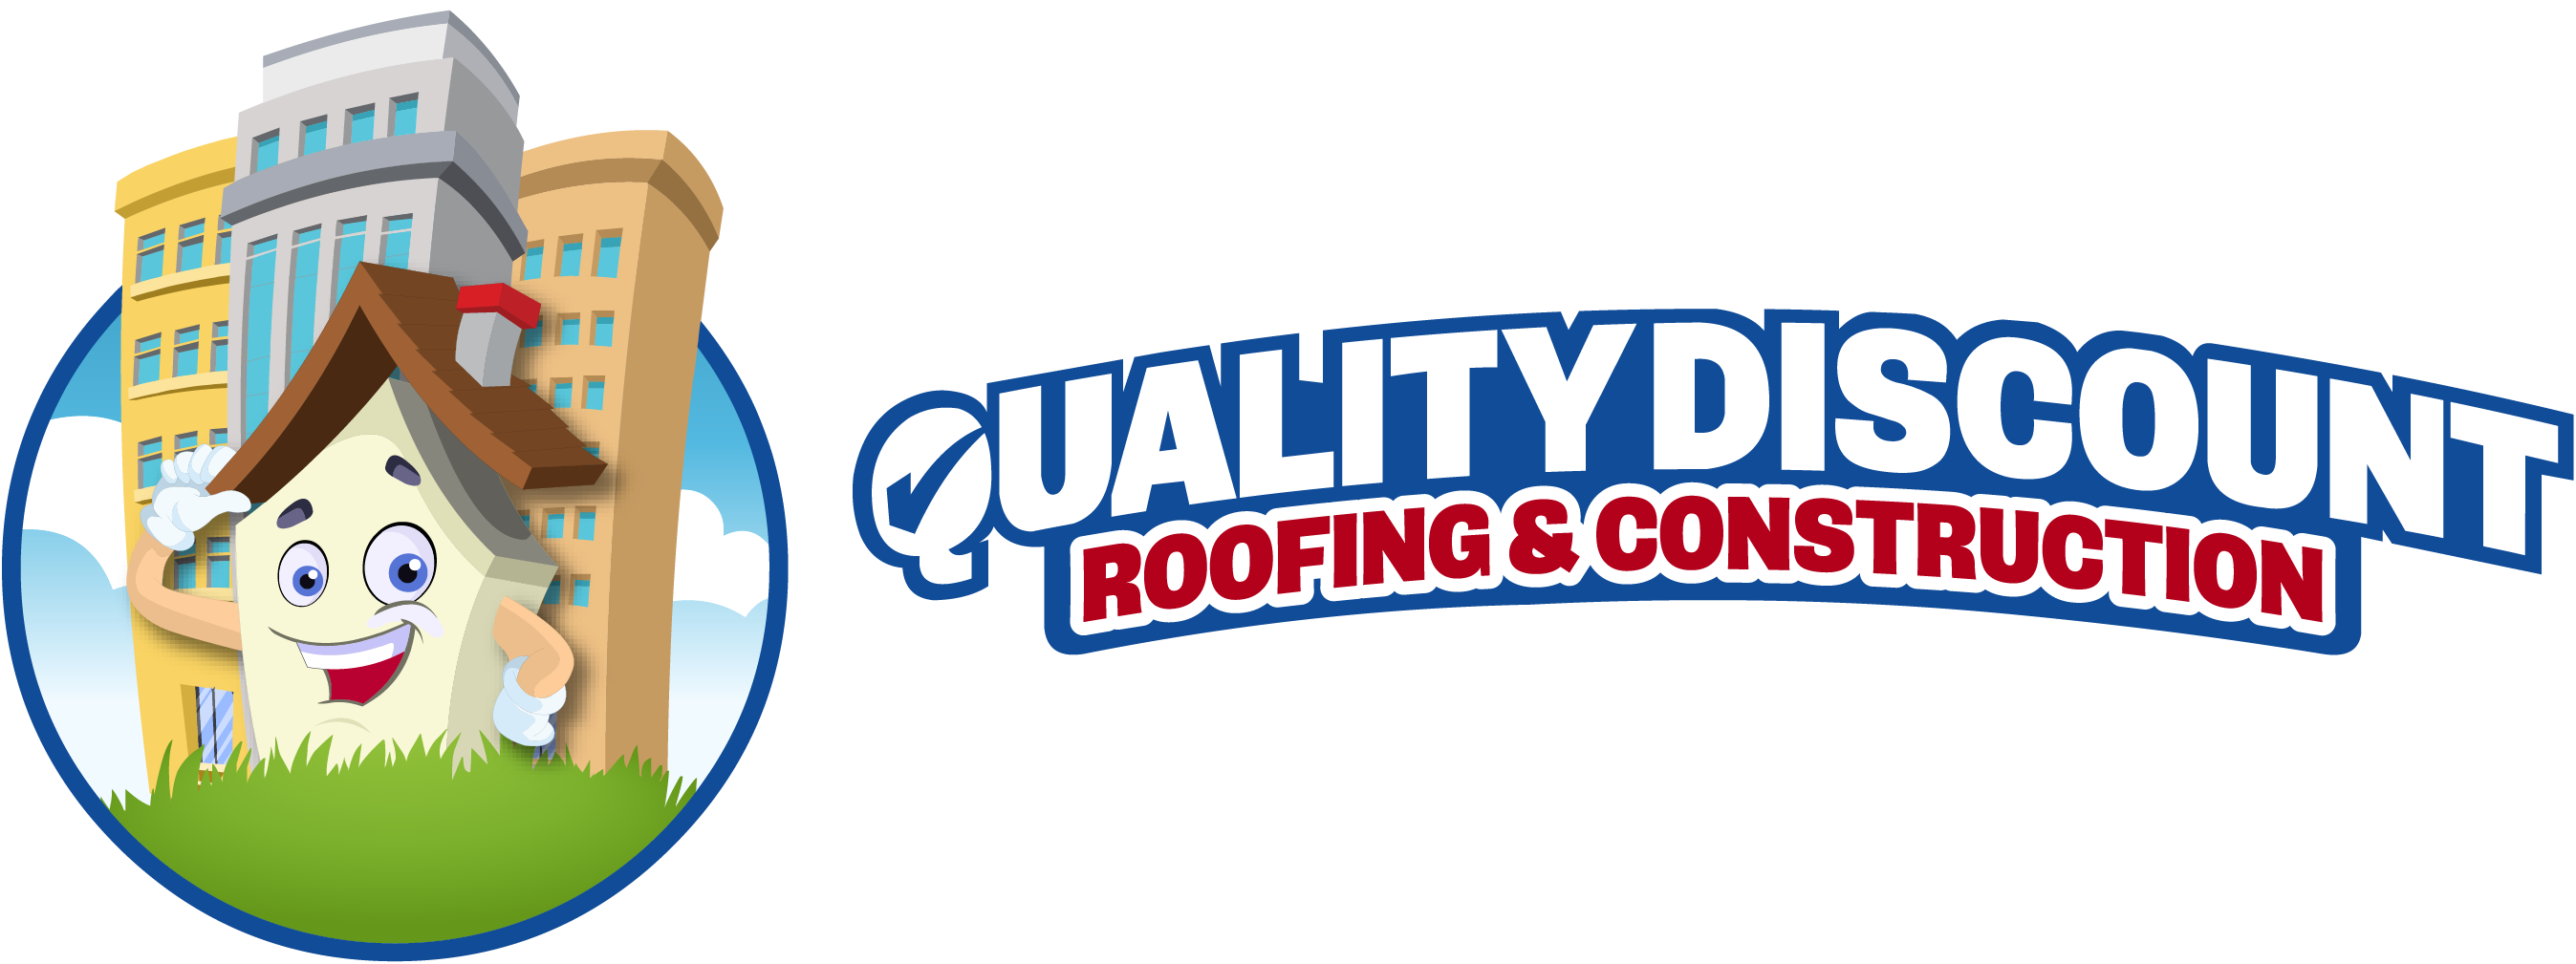 Siding and Roofing Contractor - Quality Discount Roofing & Construction